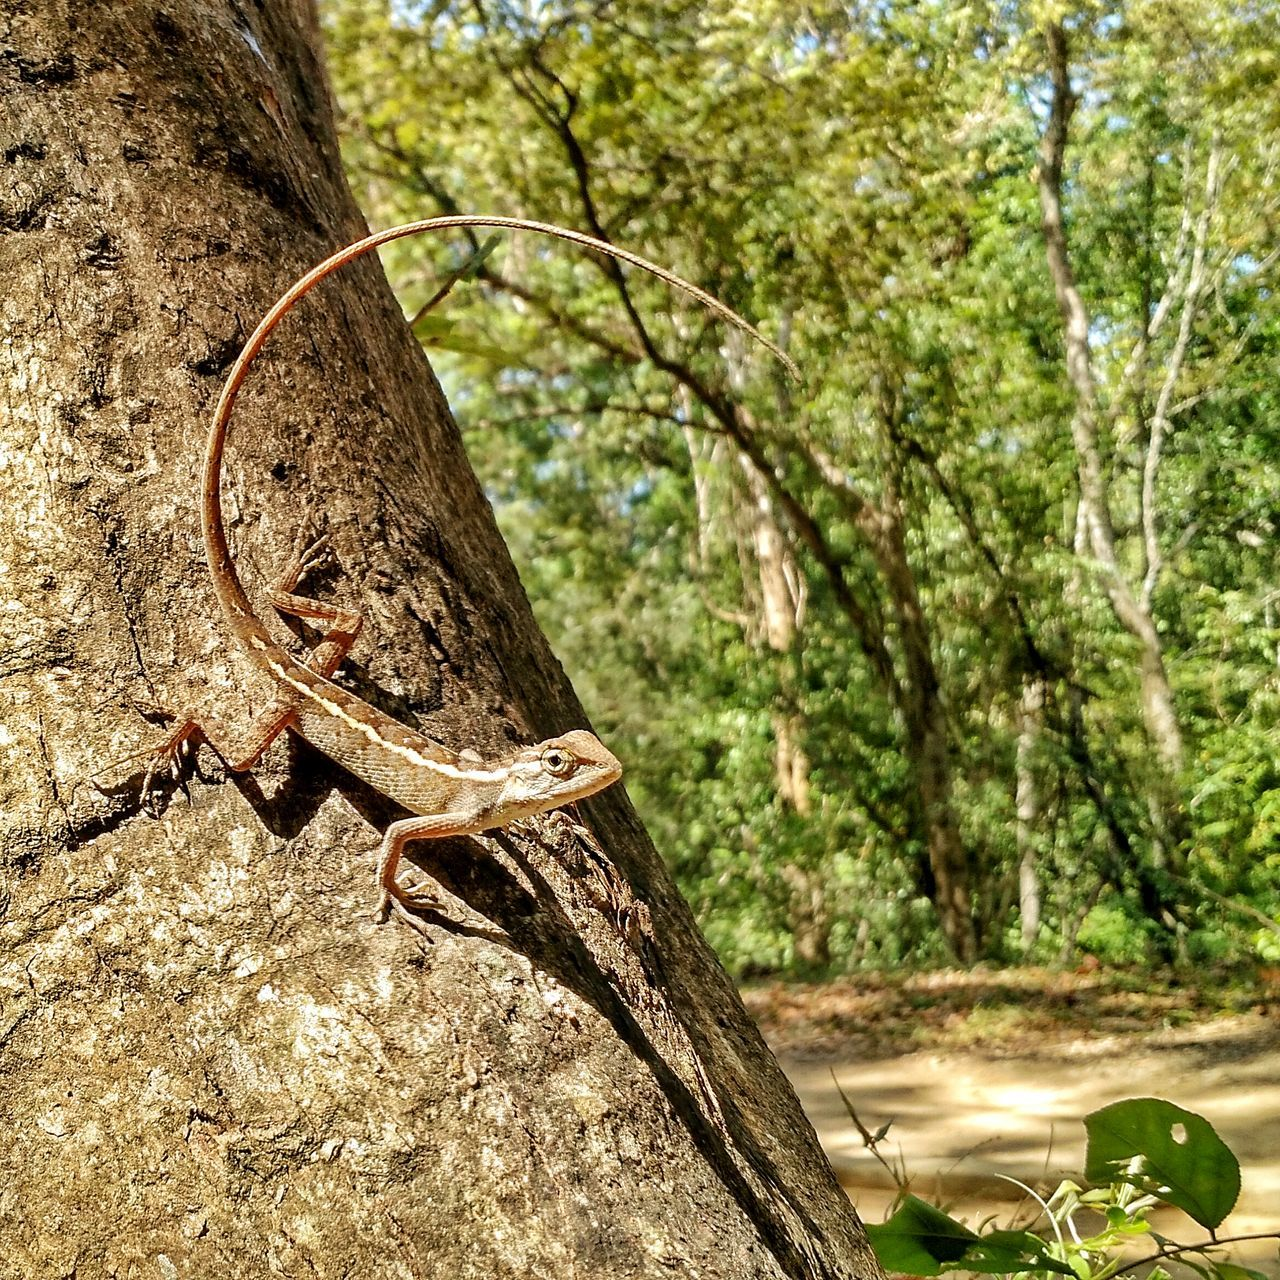 tree, one animal, day, tree trunk, animal themes, nature, animal wildlife, focus on foreground, animals in the wild, no people, outdoors, reptile, branch, close-up, iguana